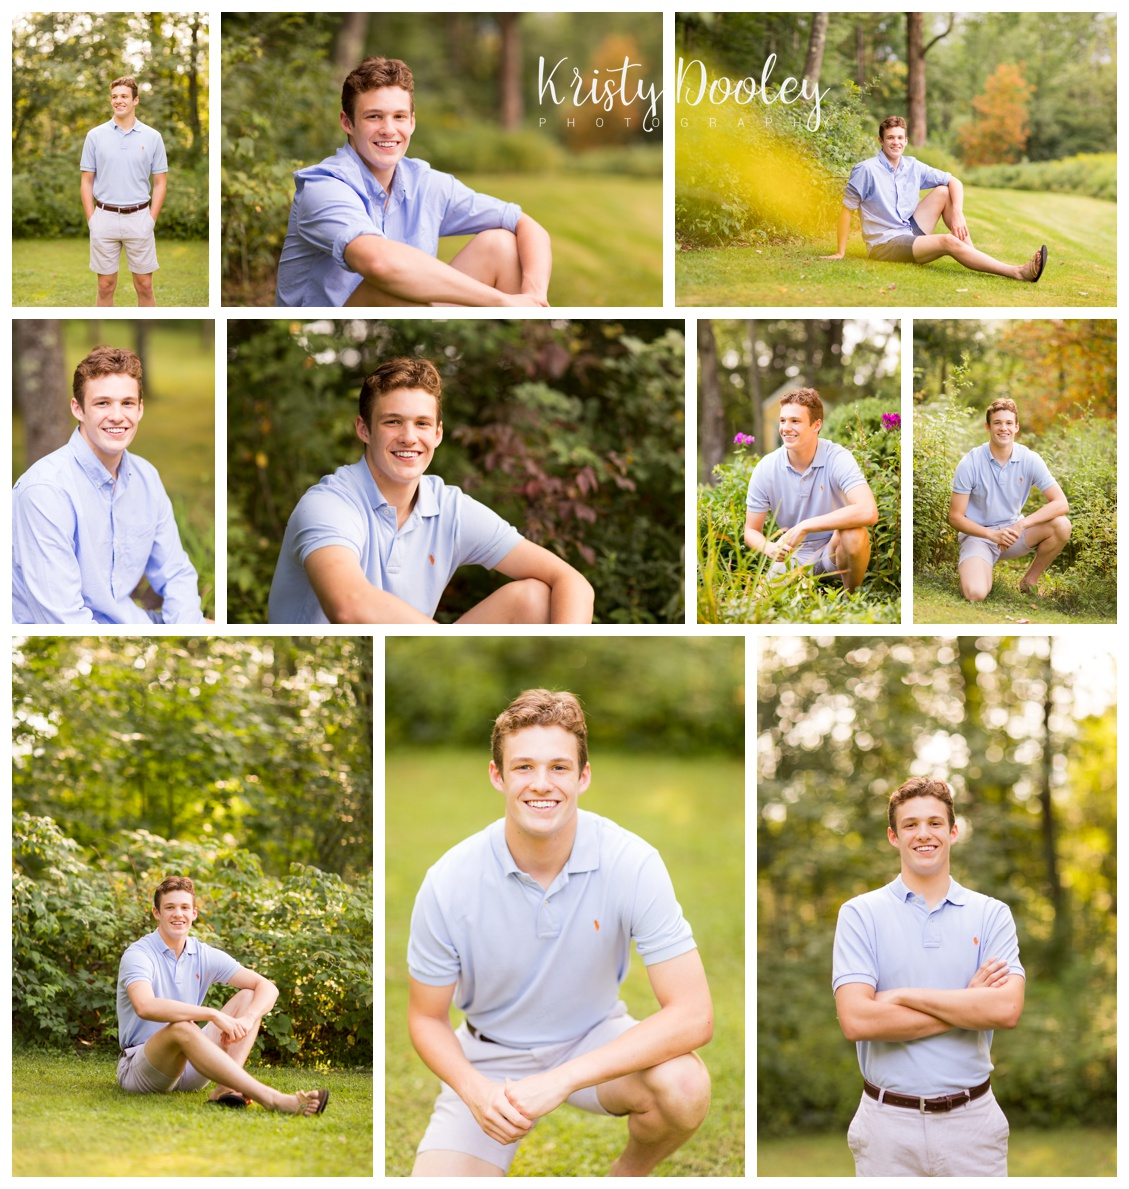 Choosing Your Senior Portrait Location